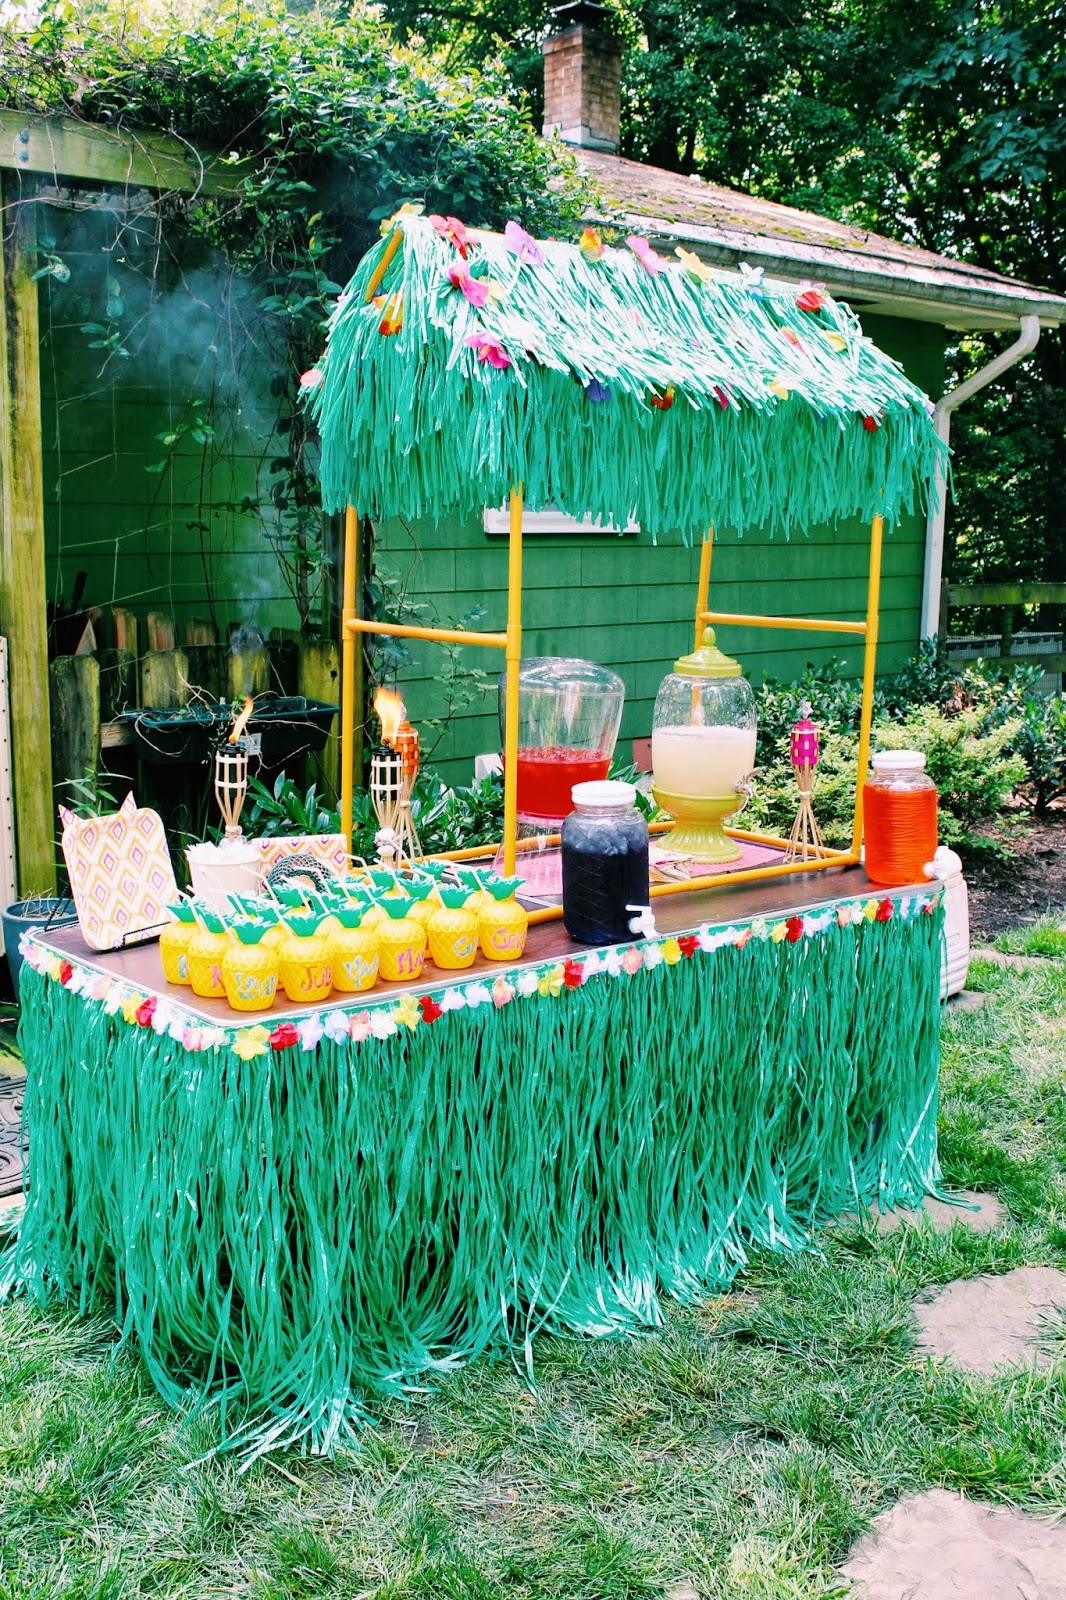 Lola, Tangled Eleventh Birthday Luau Party  The Eluau. Ideas For Tops Of Kitchen Cabinets. Paint Colours For Kitchens With White Cabinets. Kitchen Island Overhang For Stools. Kitchen Counter Ideas. Kitchen Aid Mixer White. Cafe Kitchen Decorating Ideas. Standard Height For Kitchen Island. Kitchen Centerpiece Ideas